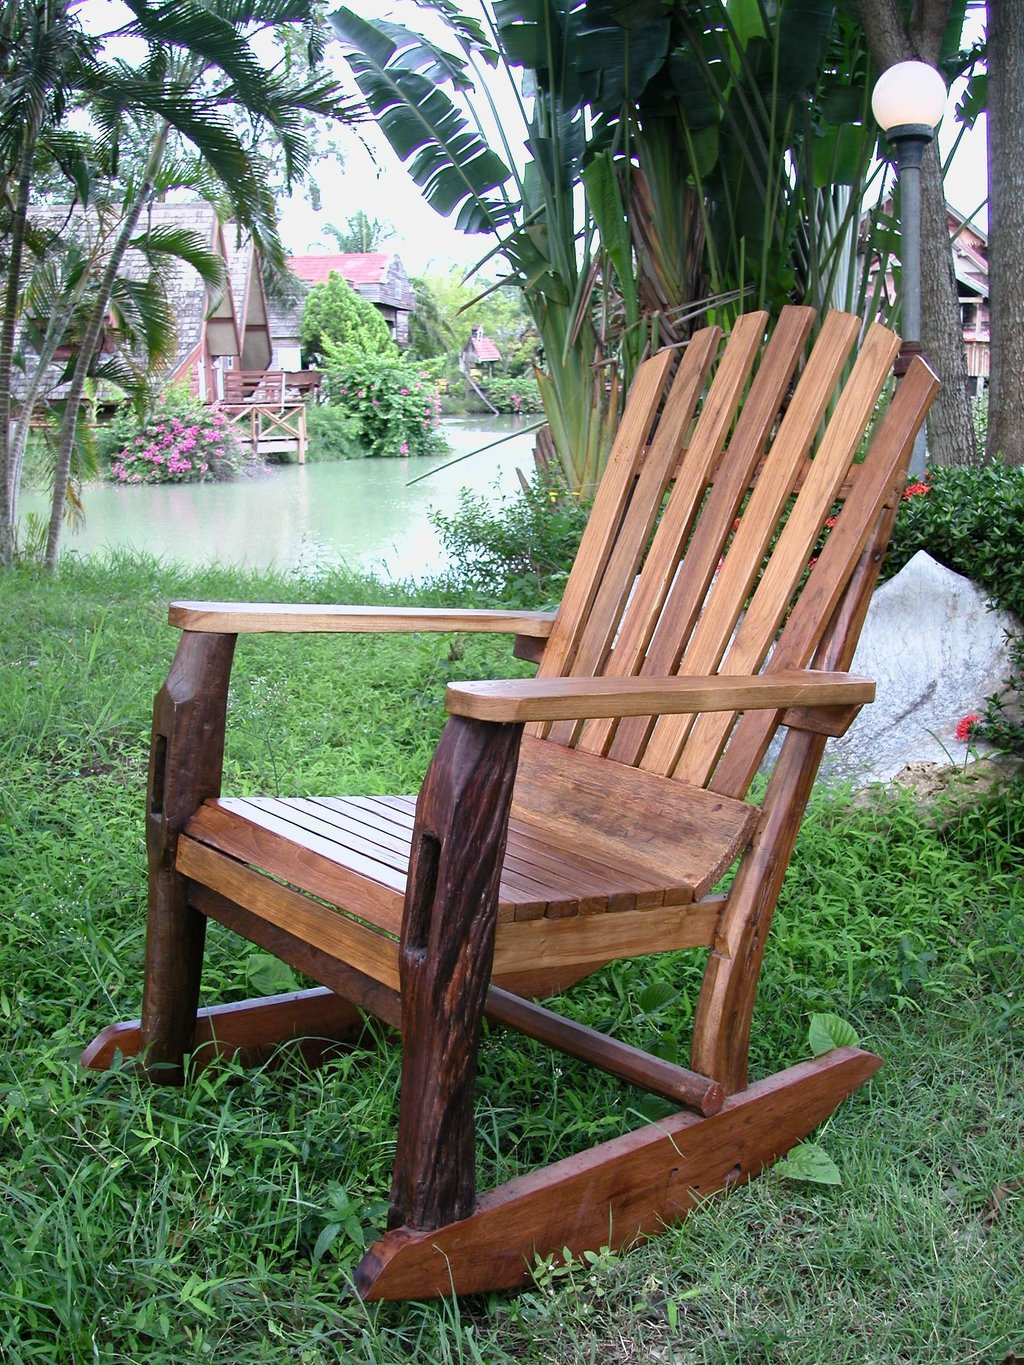 Outdoor Rocking Chair Recycled Plastic Outdoor Chair Outdoor Rocking Chairs Design